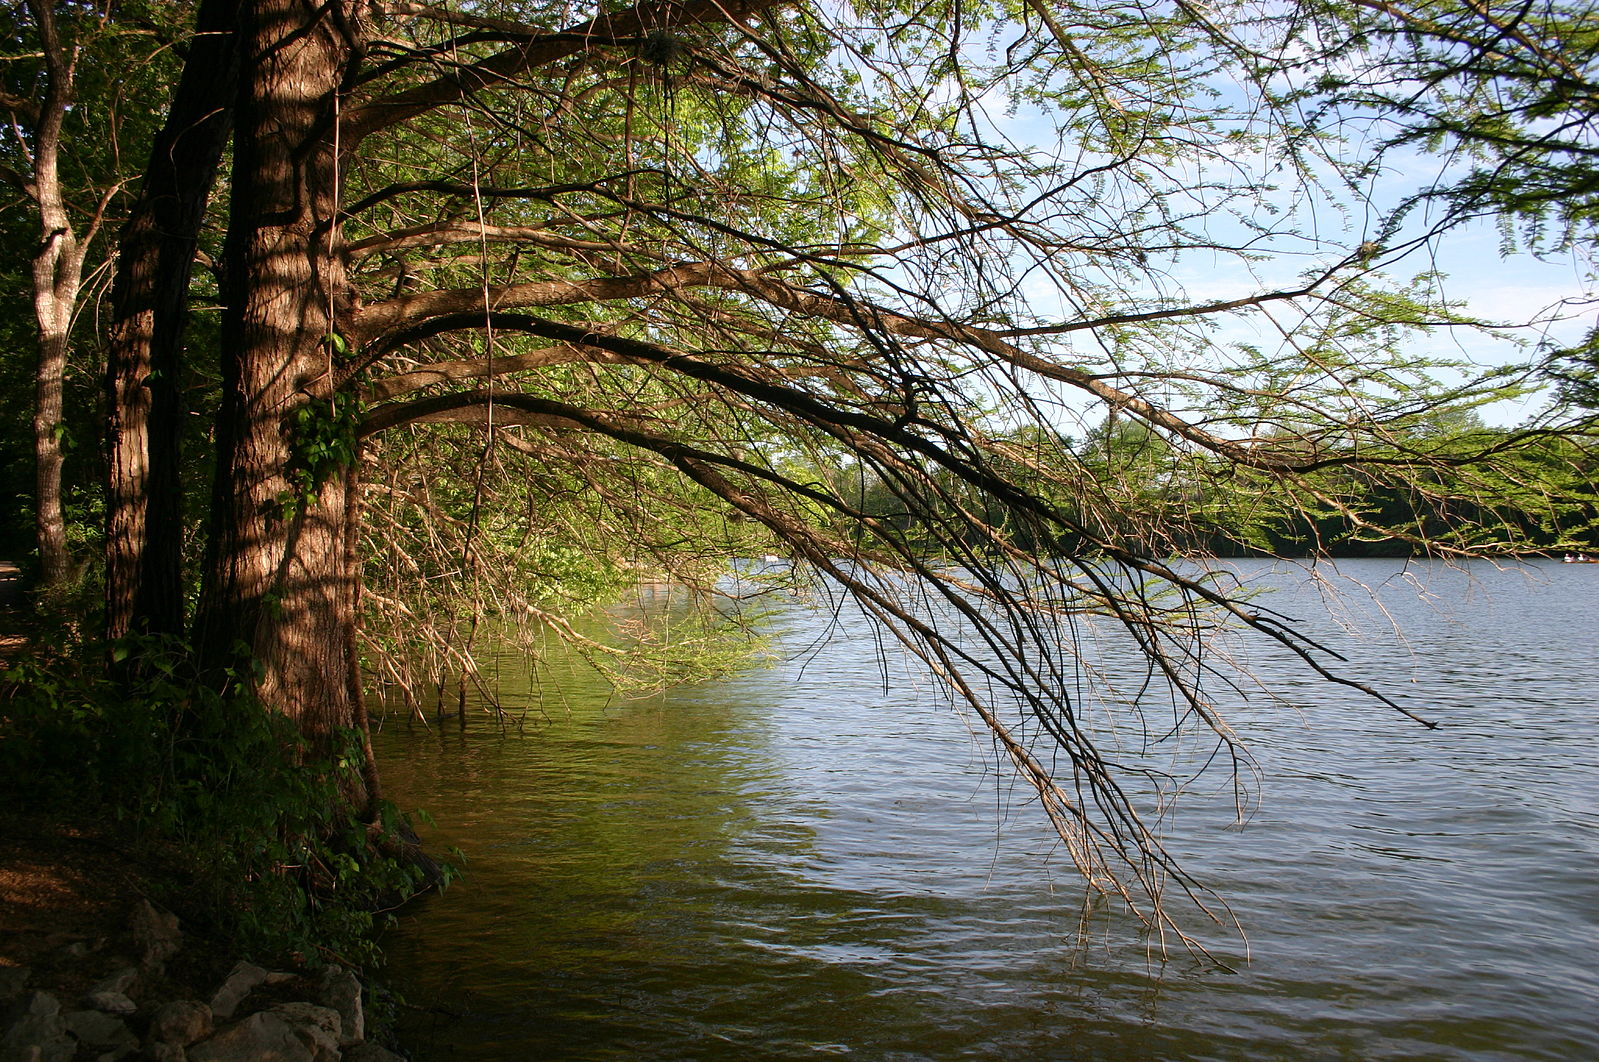 Photo of trees over a water body: example of a terrestrial-aquatic interface